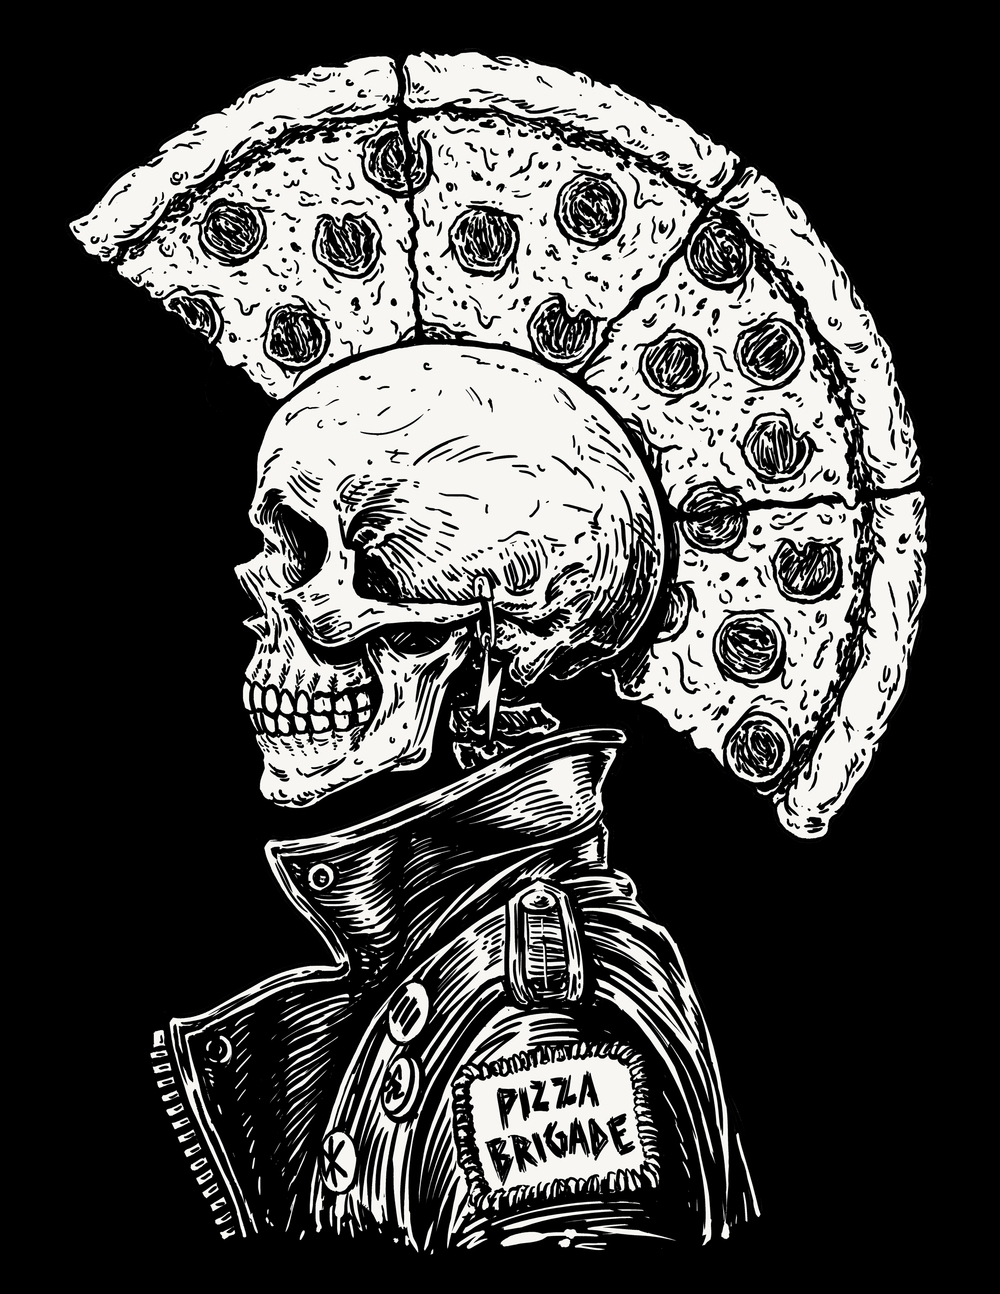 pizza brigade website crust punk.jpg